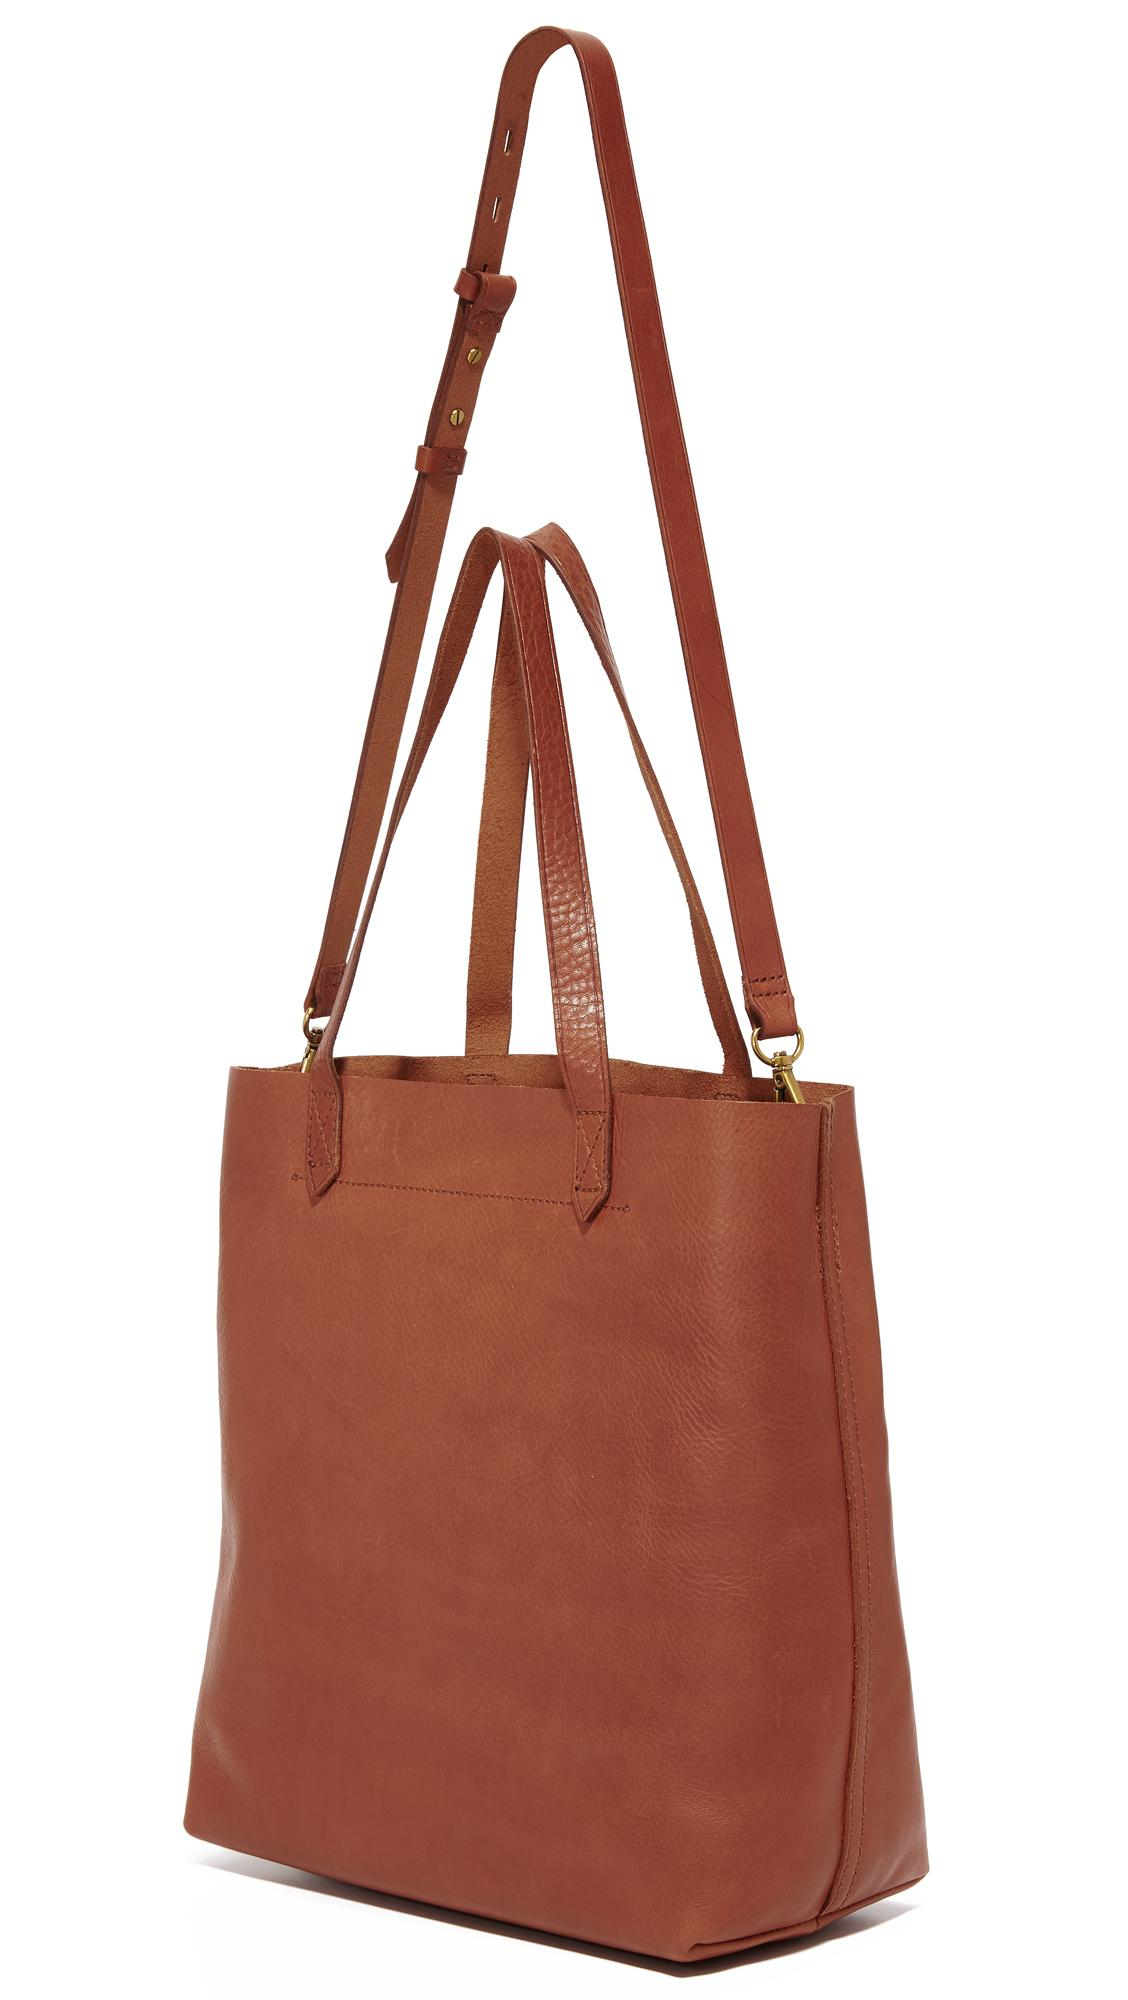 Madewell Leather The Medium Transport Tote in Brown